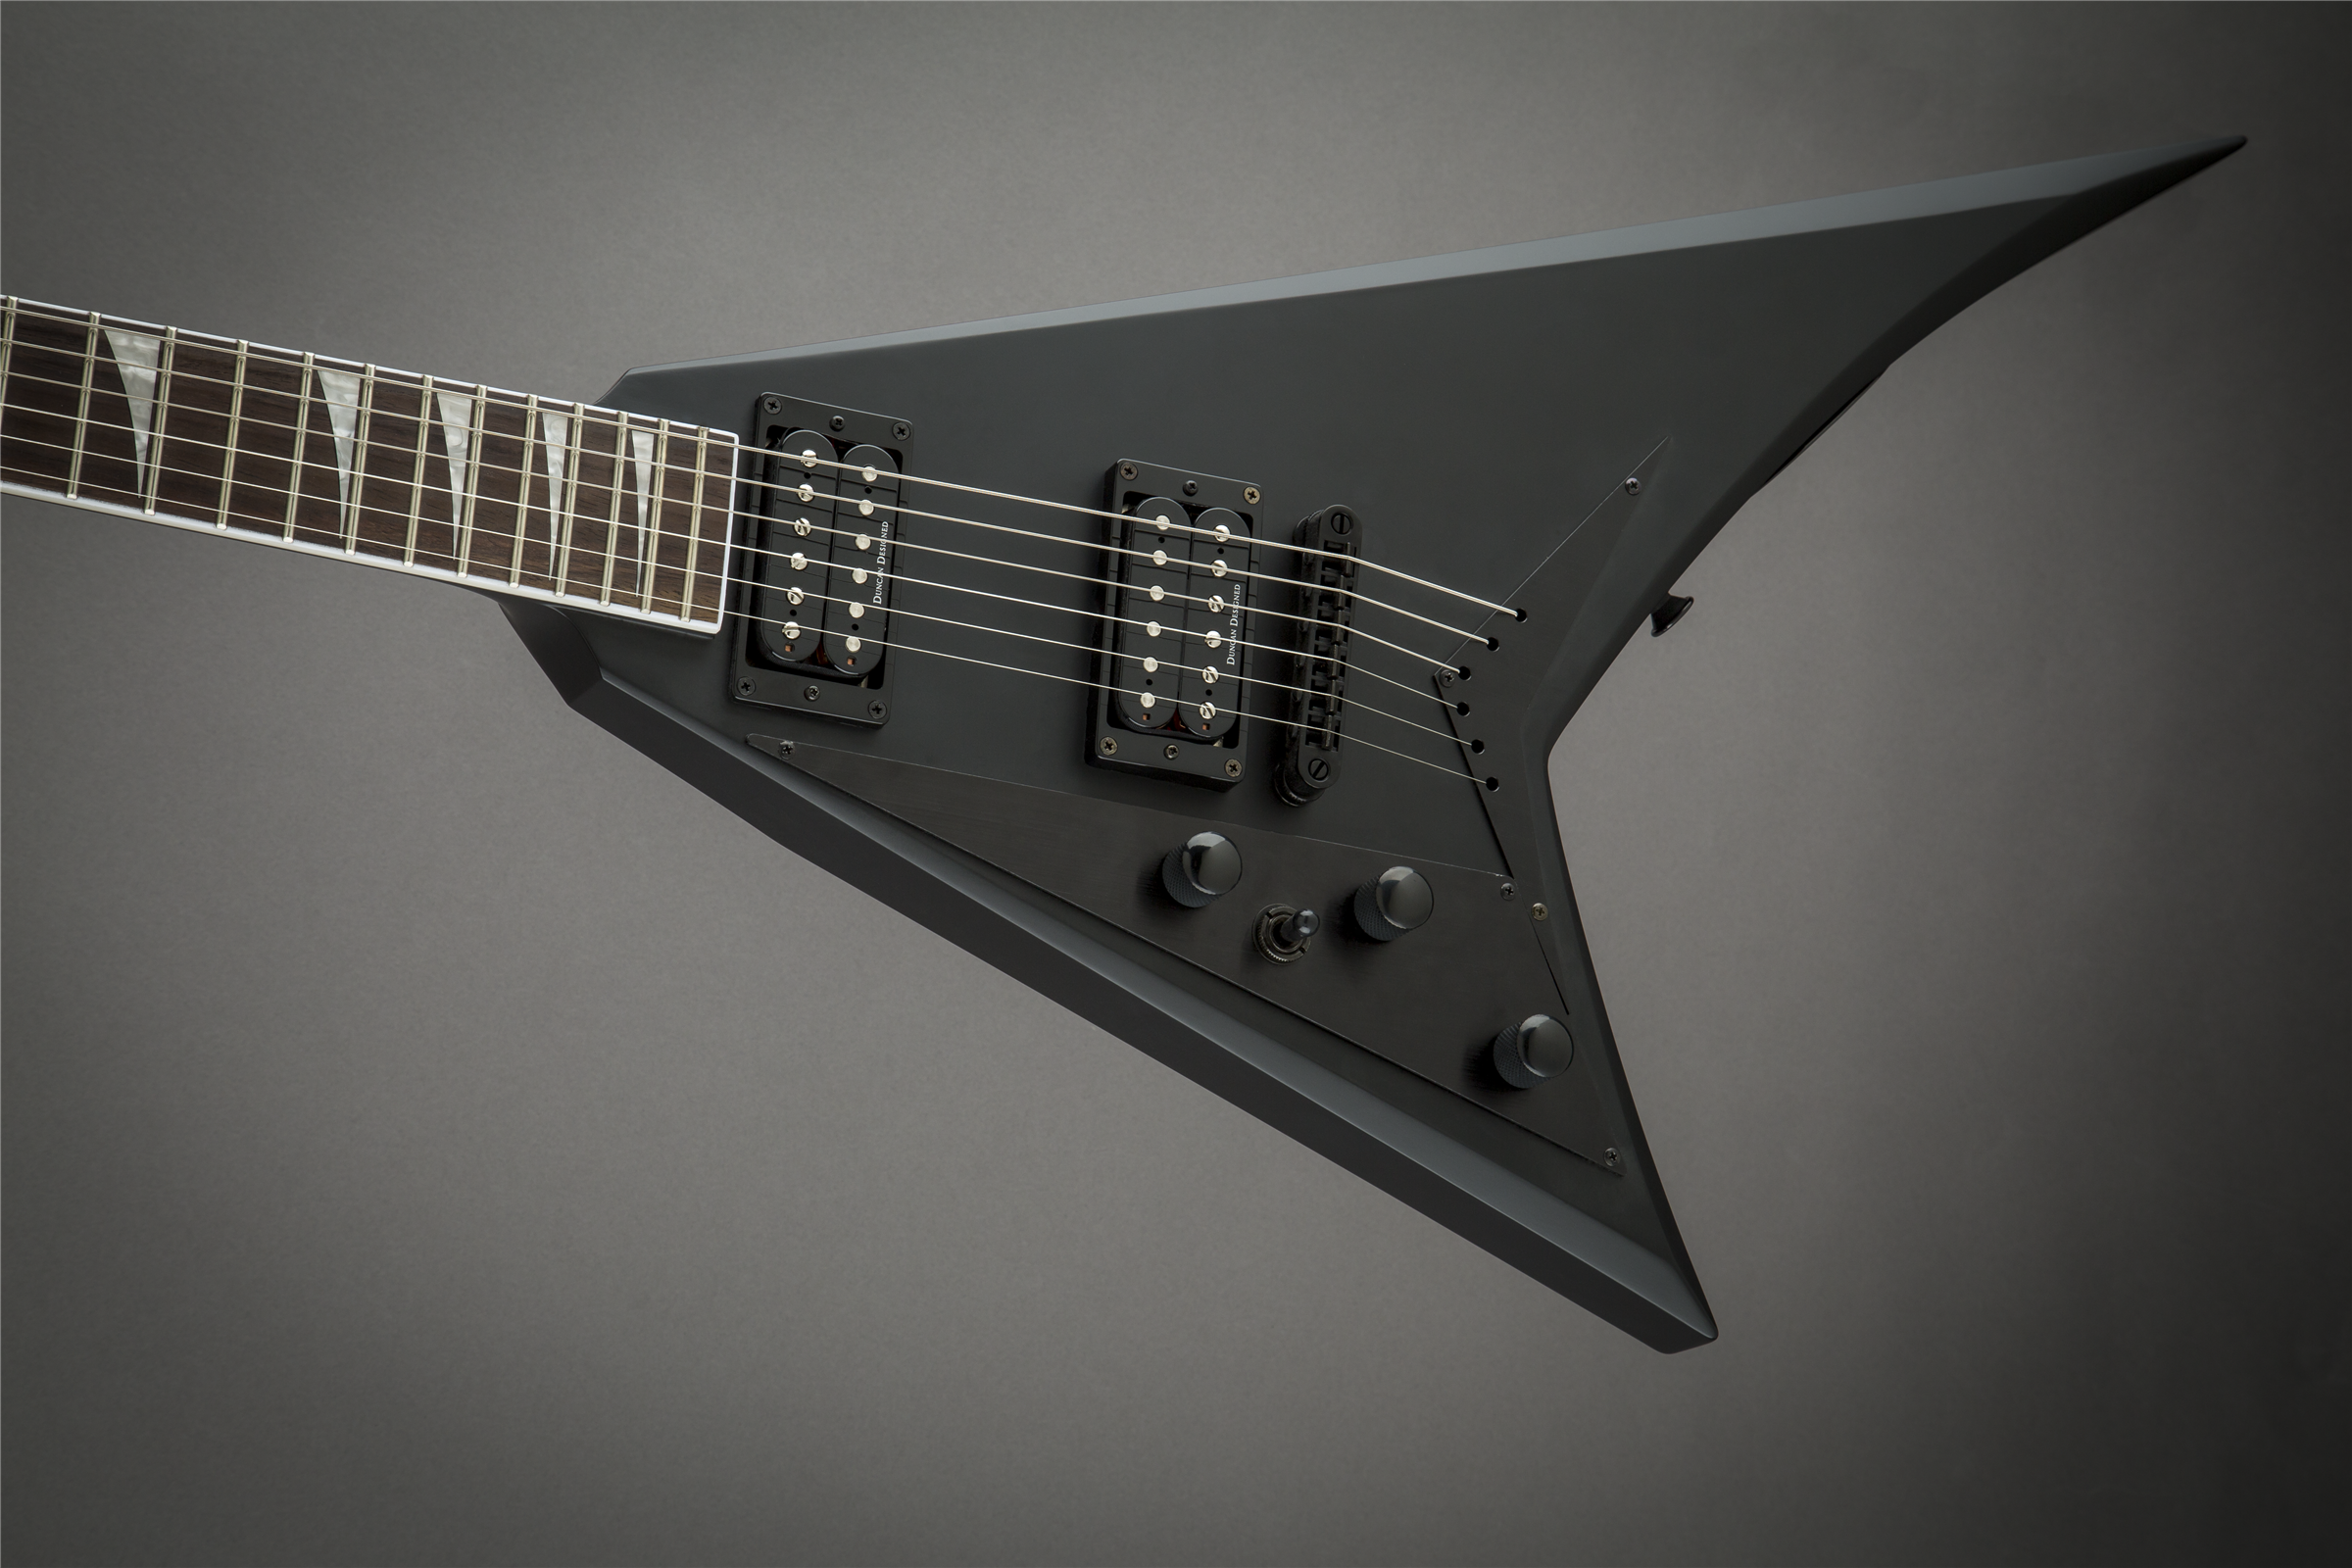 Rhoads X Series Rrxt Lh Rosewood Fingerboard Satin Black Jackson V Wiring Diagram For As Sleek An Airliner And Iconic The Artist Who Inspired Co Designedthe Oft Imitated But Never Surpassed Randy Rhoadsthe